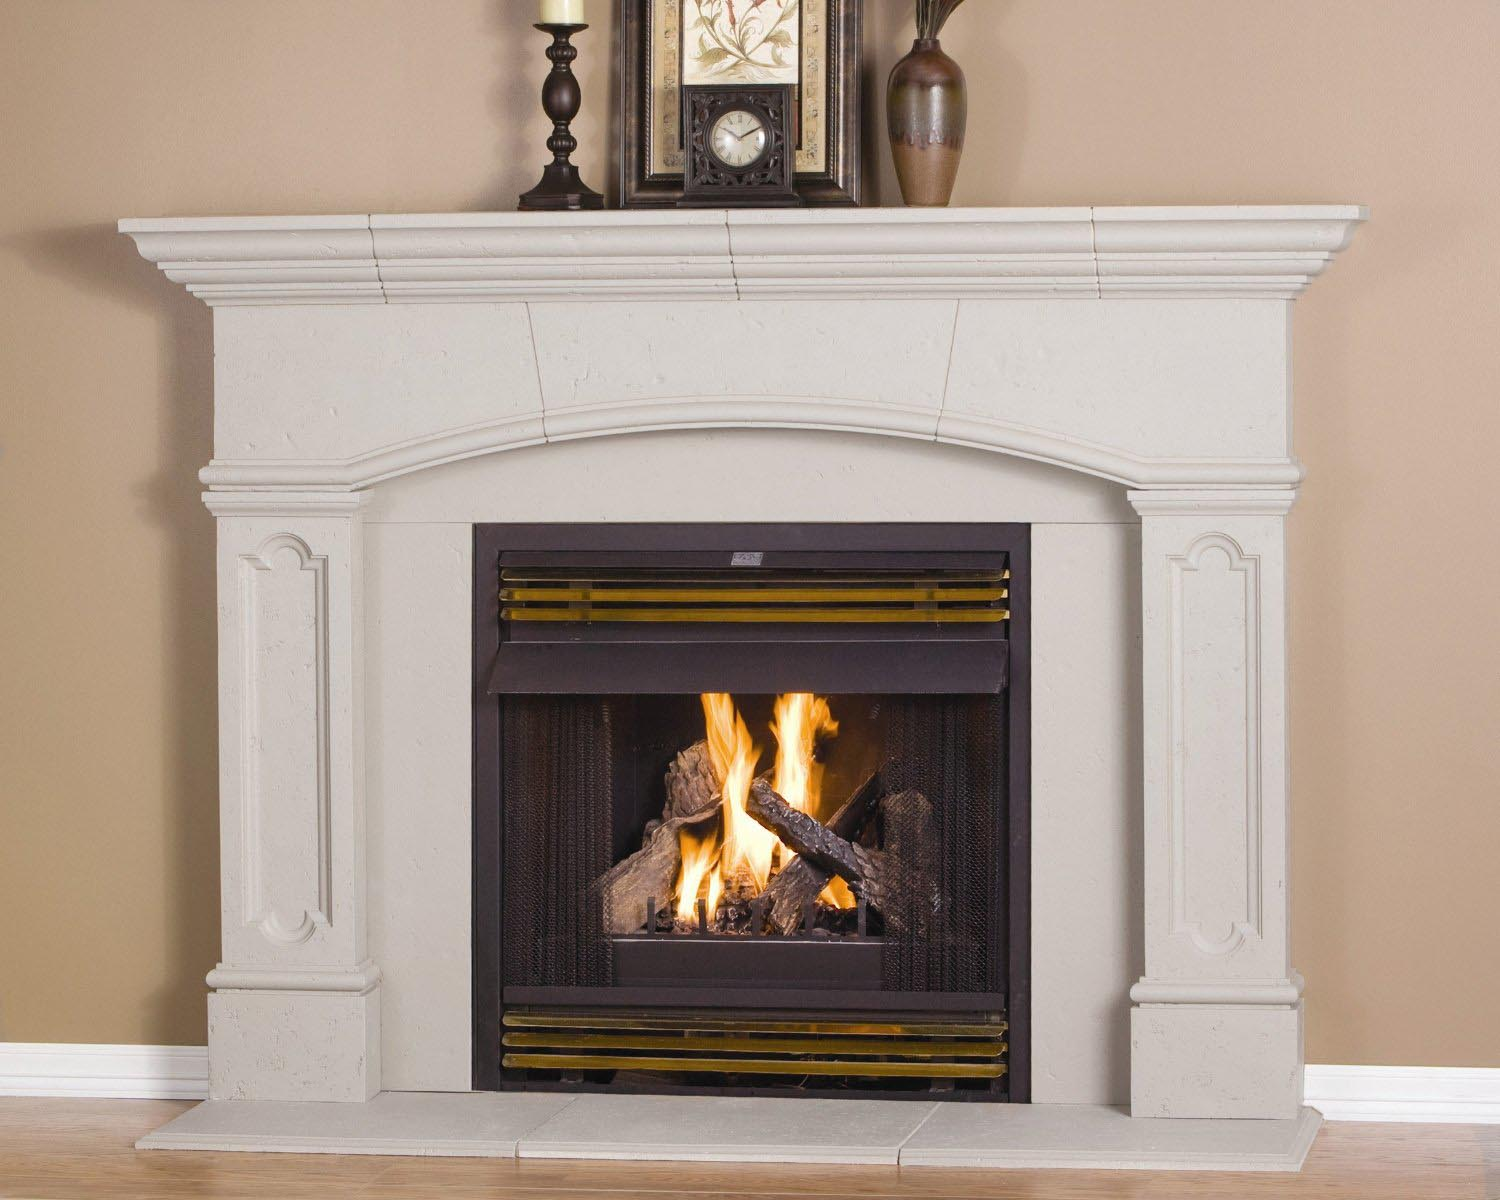 Fireplace mantel surrounds ideas fireplace designs Fireplace design ideas